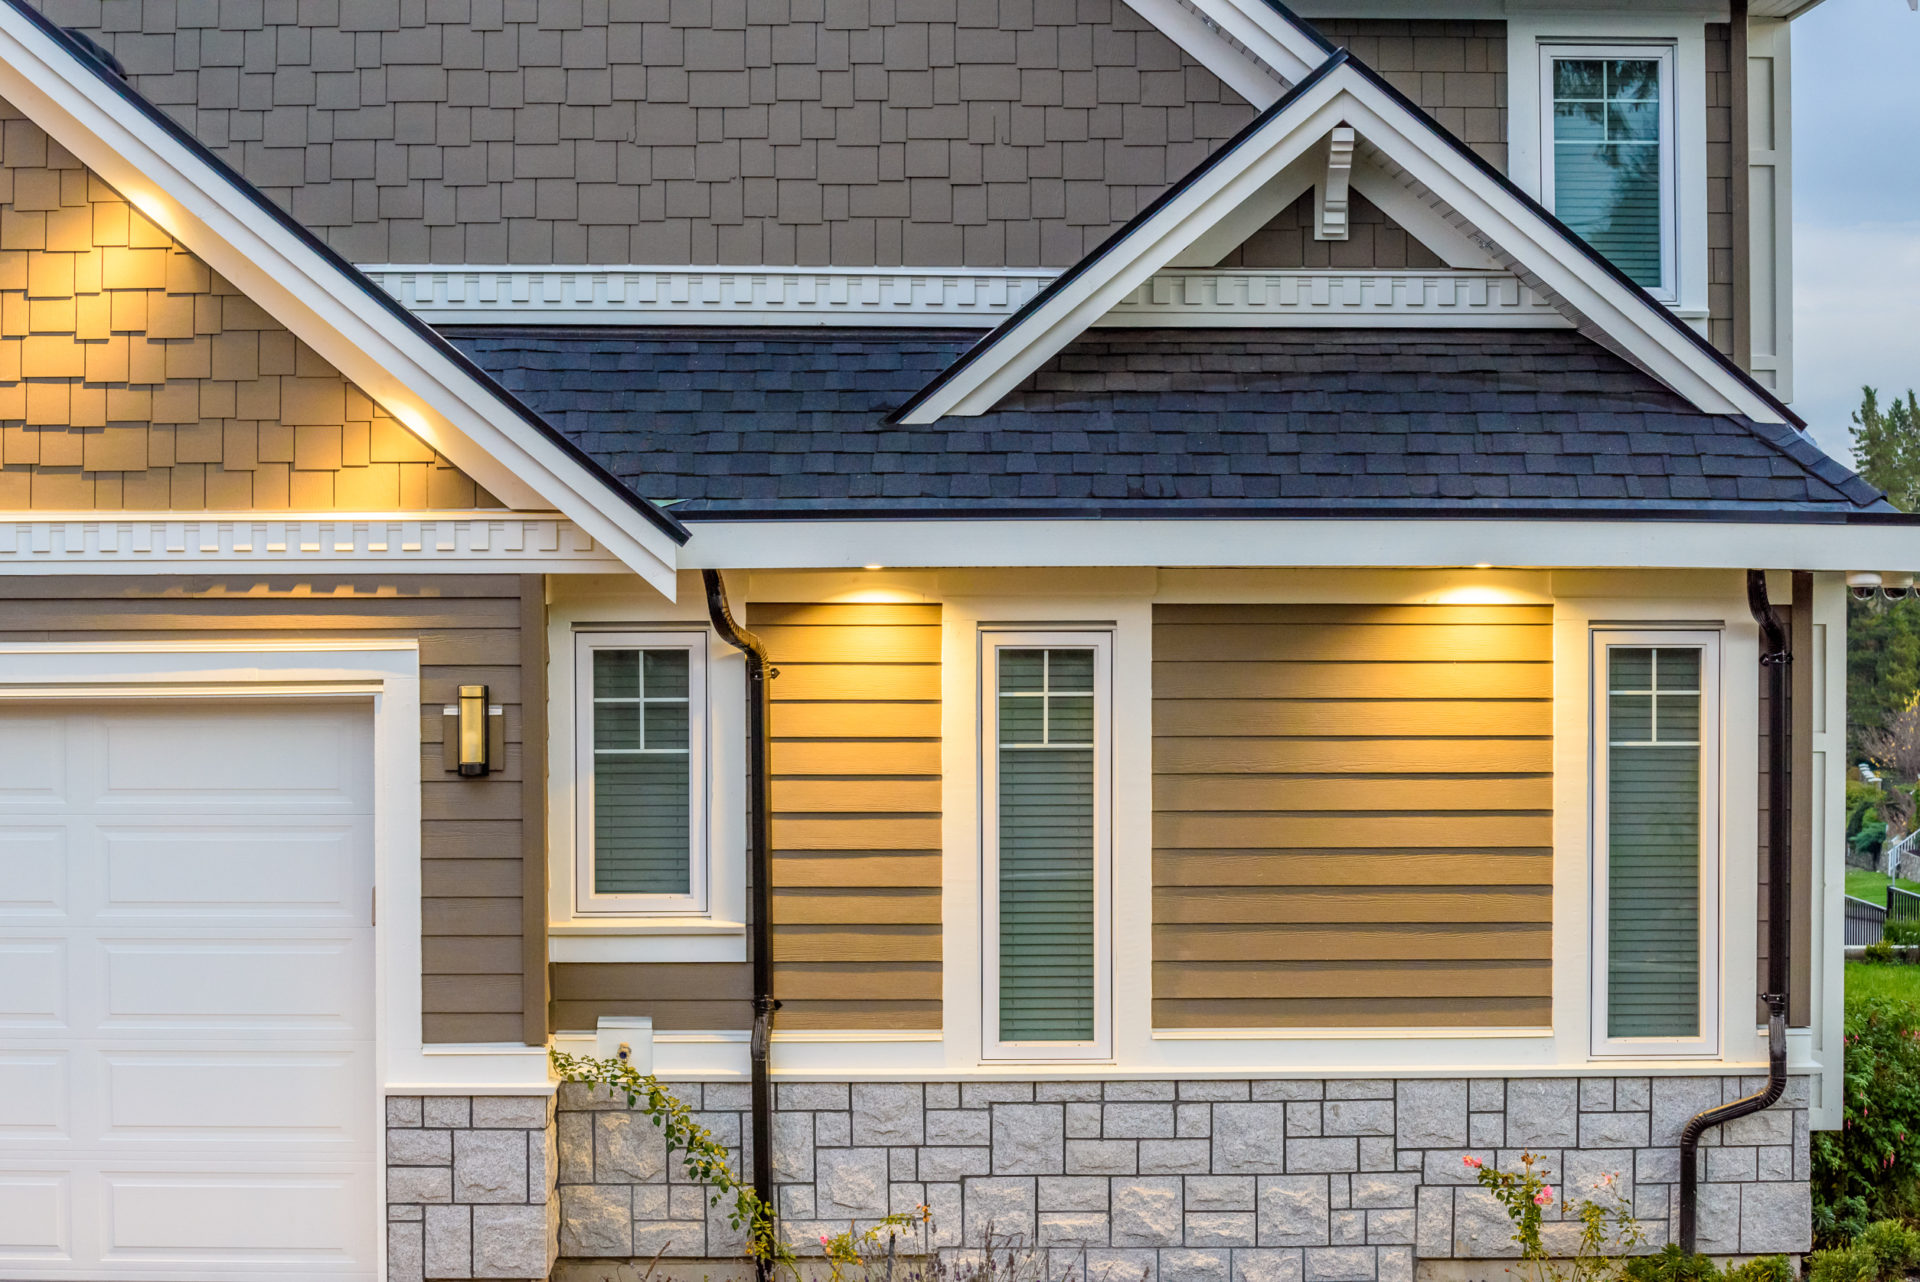 Benefits Of Insulated House Siding Ultimate Gutter Guard